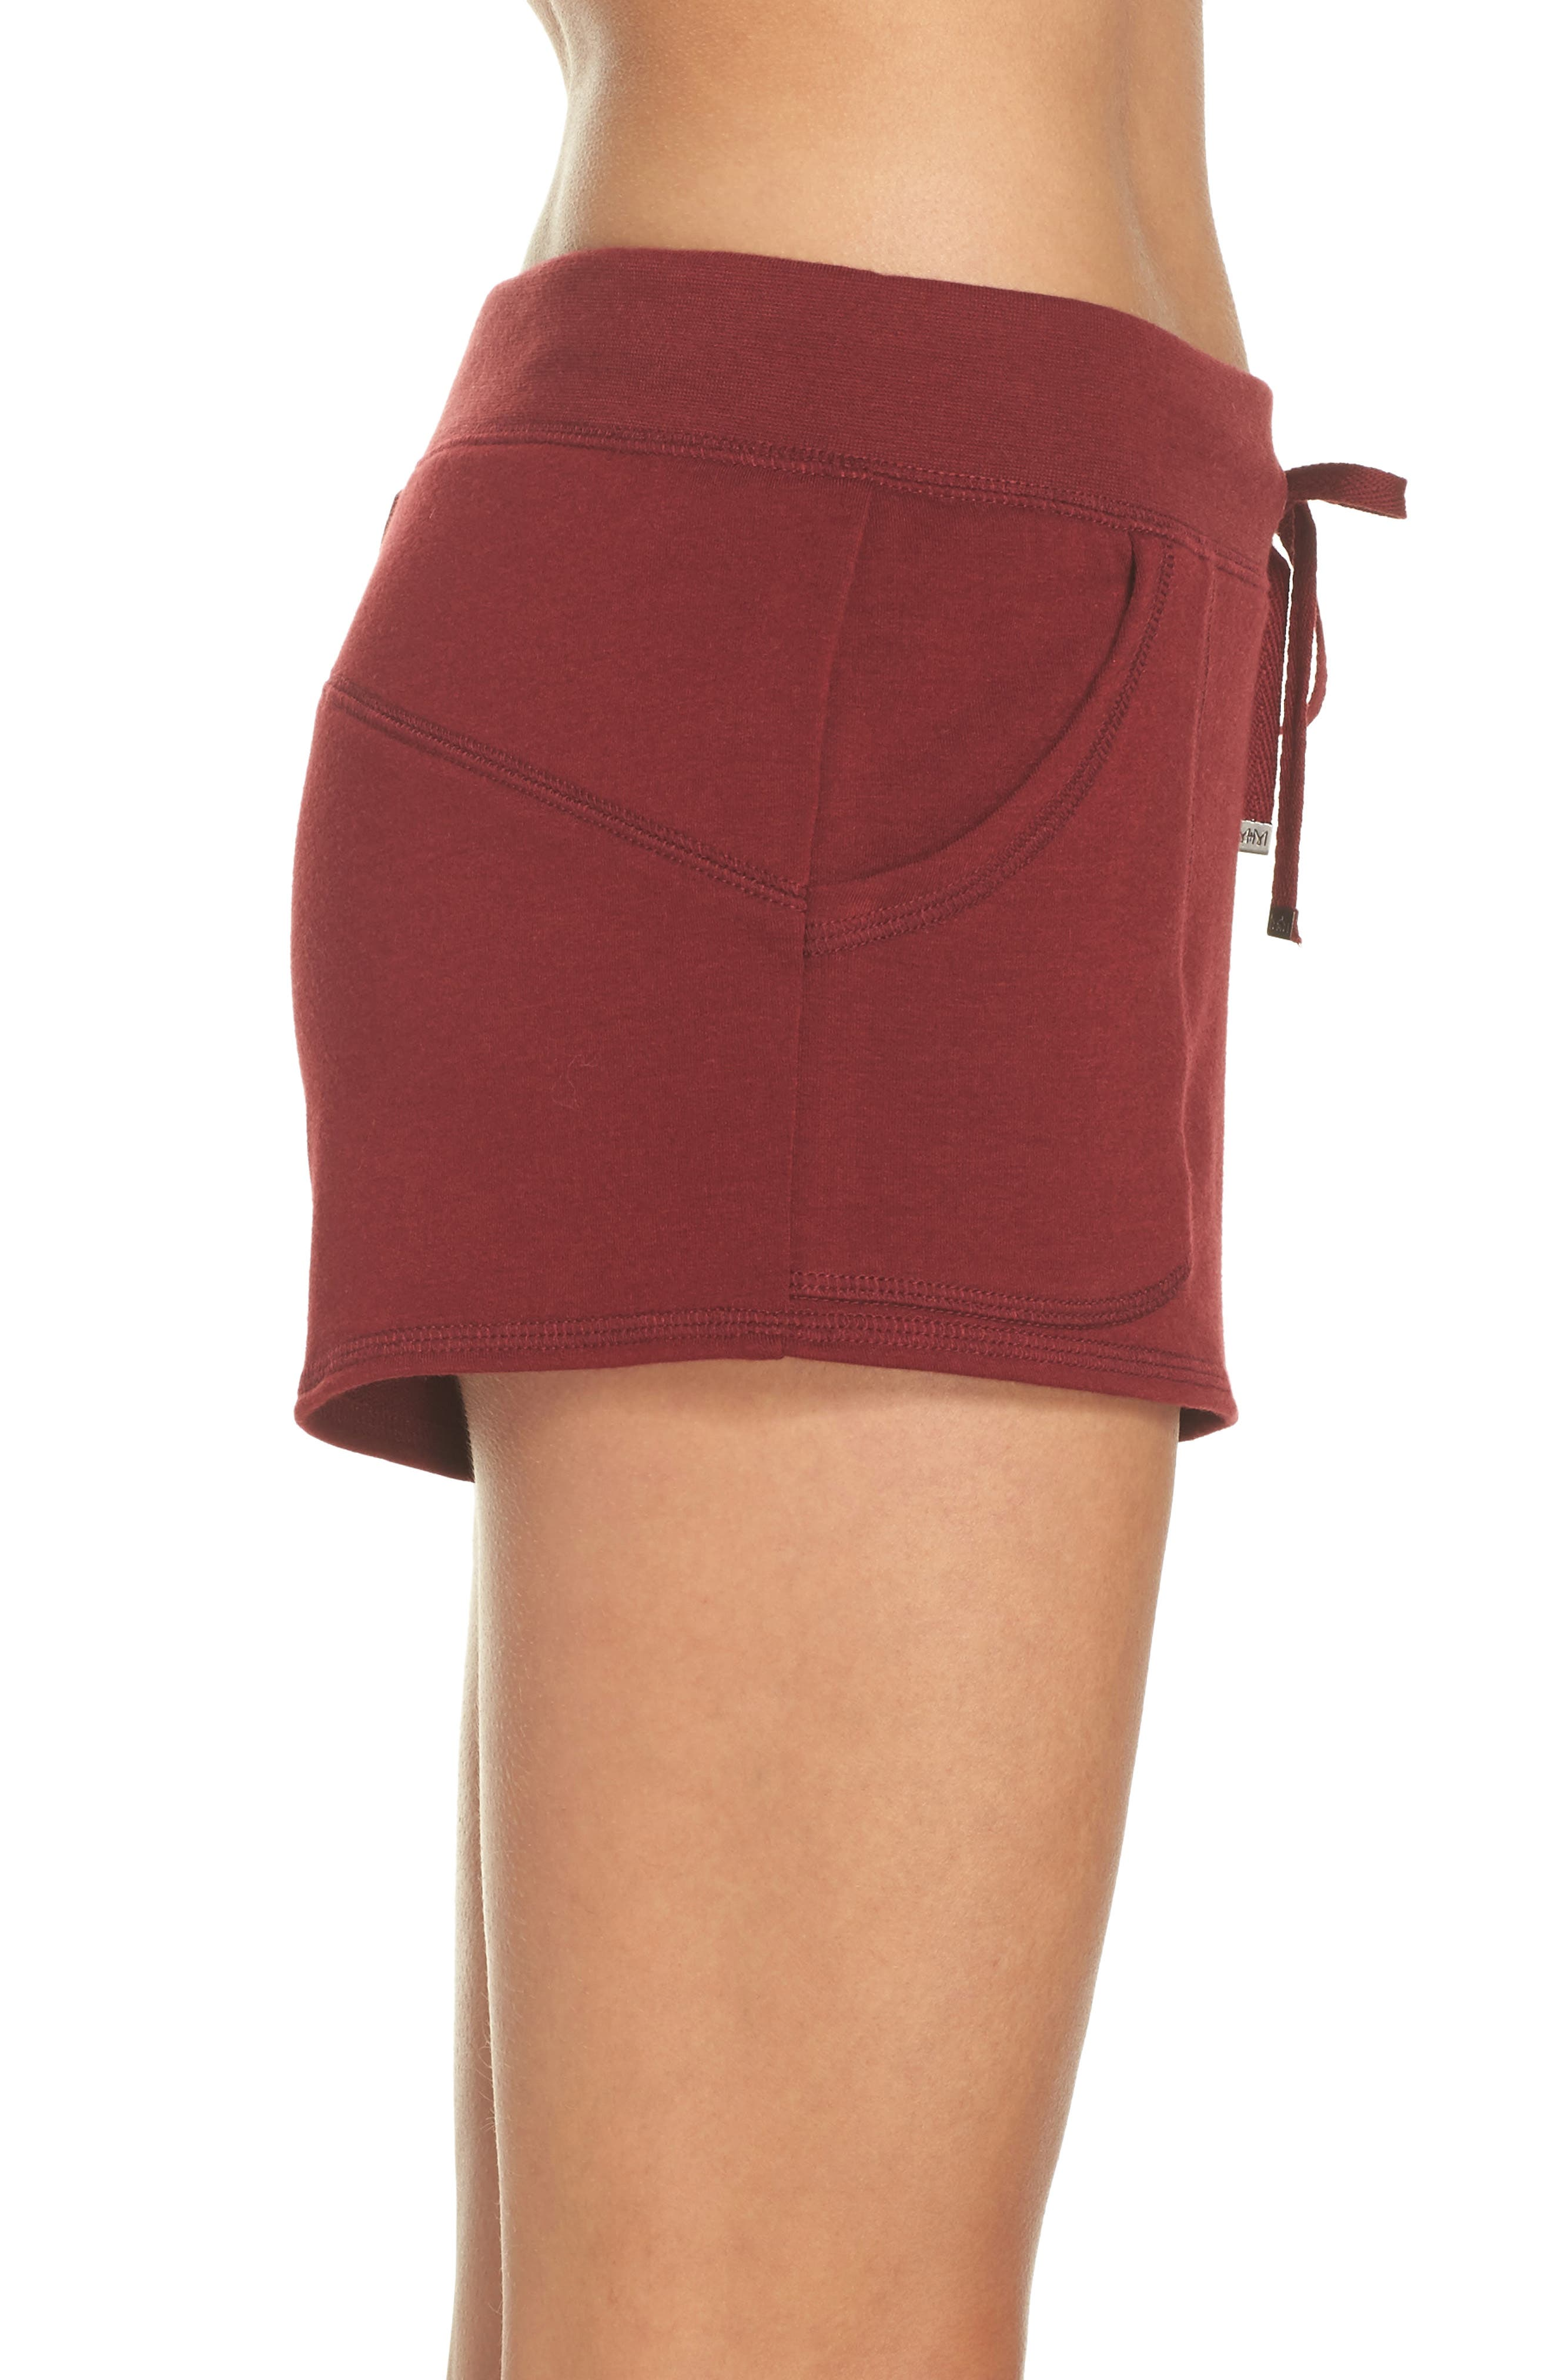 Down To The Details Lounge Shorts,                             Alternate thumbnail 3, color,                             Red Grape